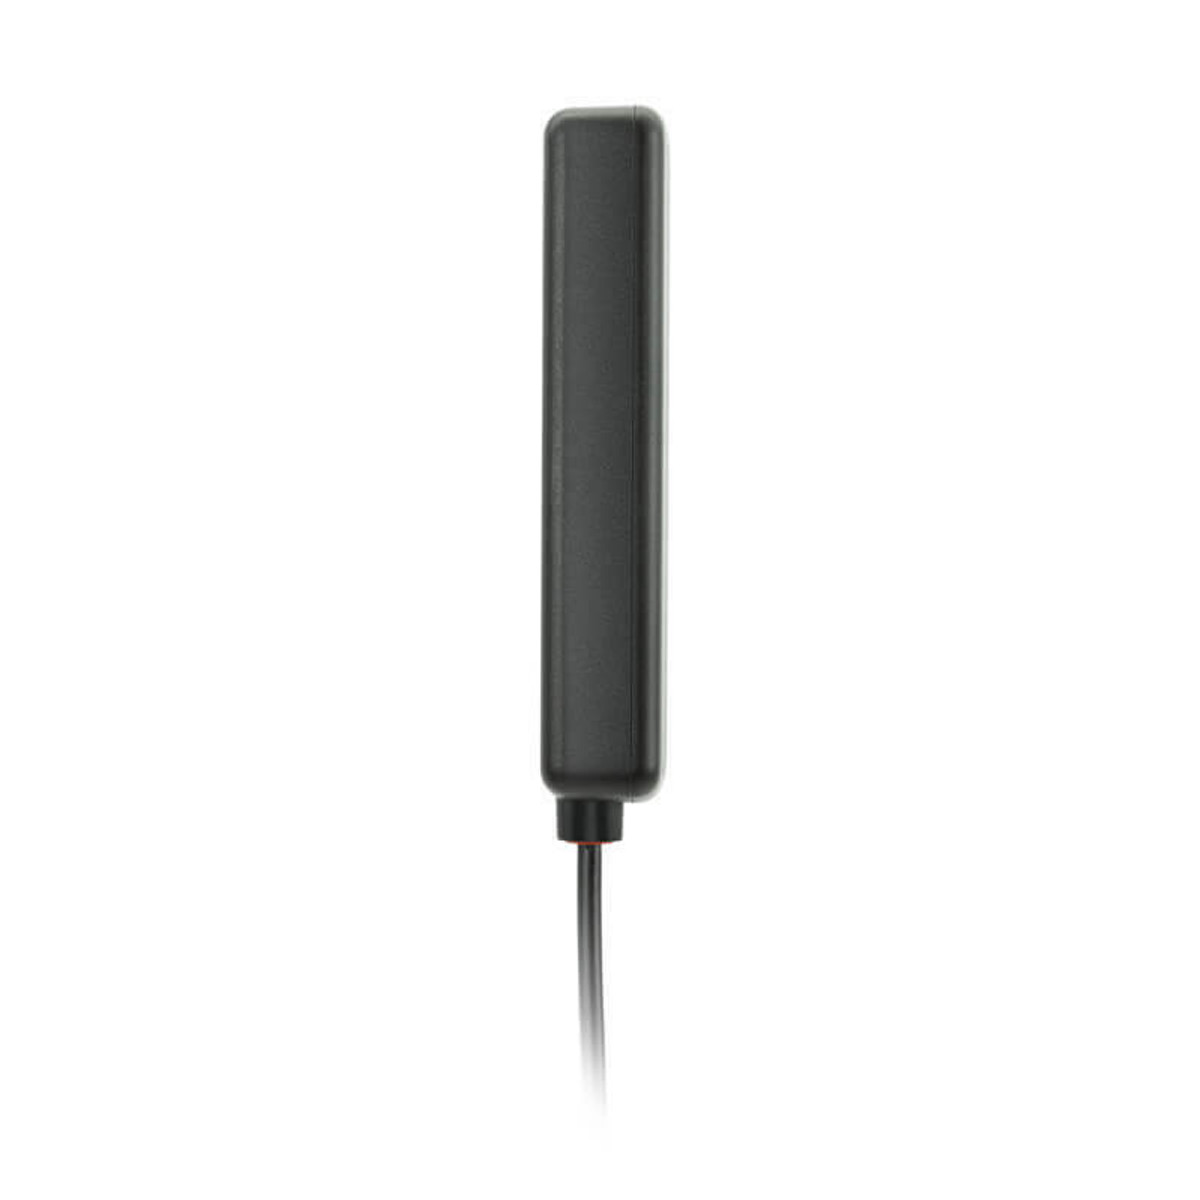 Wilson Electronics Wilson In-Vehicle Antenna w/ 10ft Cable SMB Connector or 314419